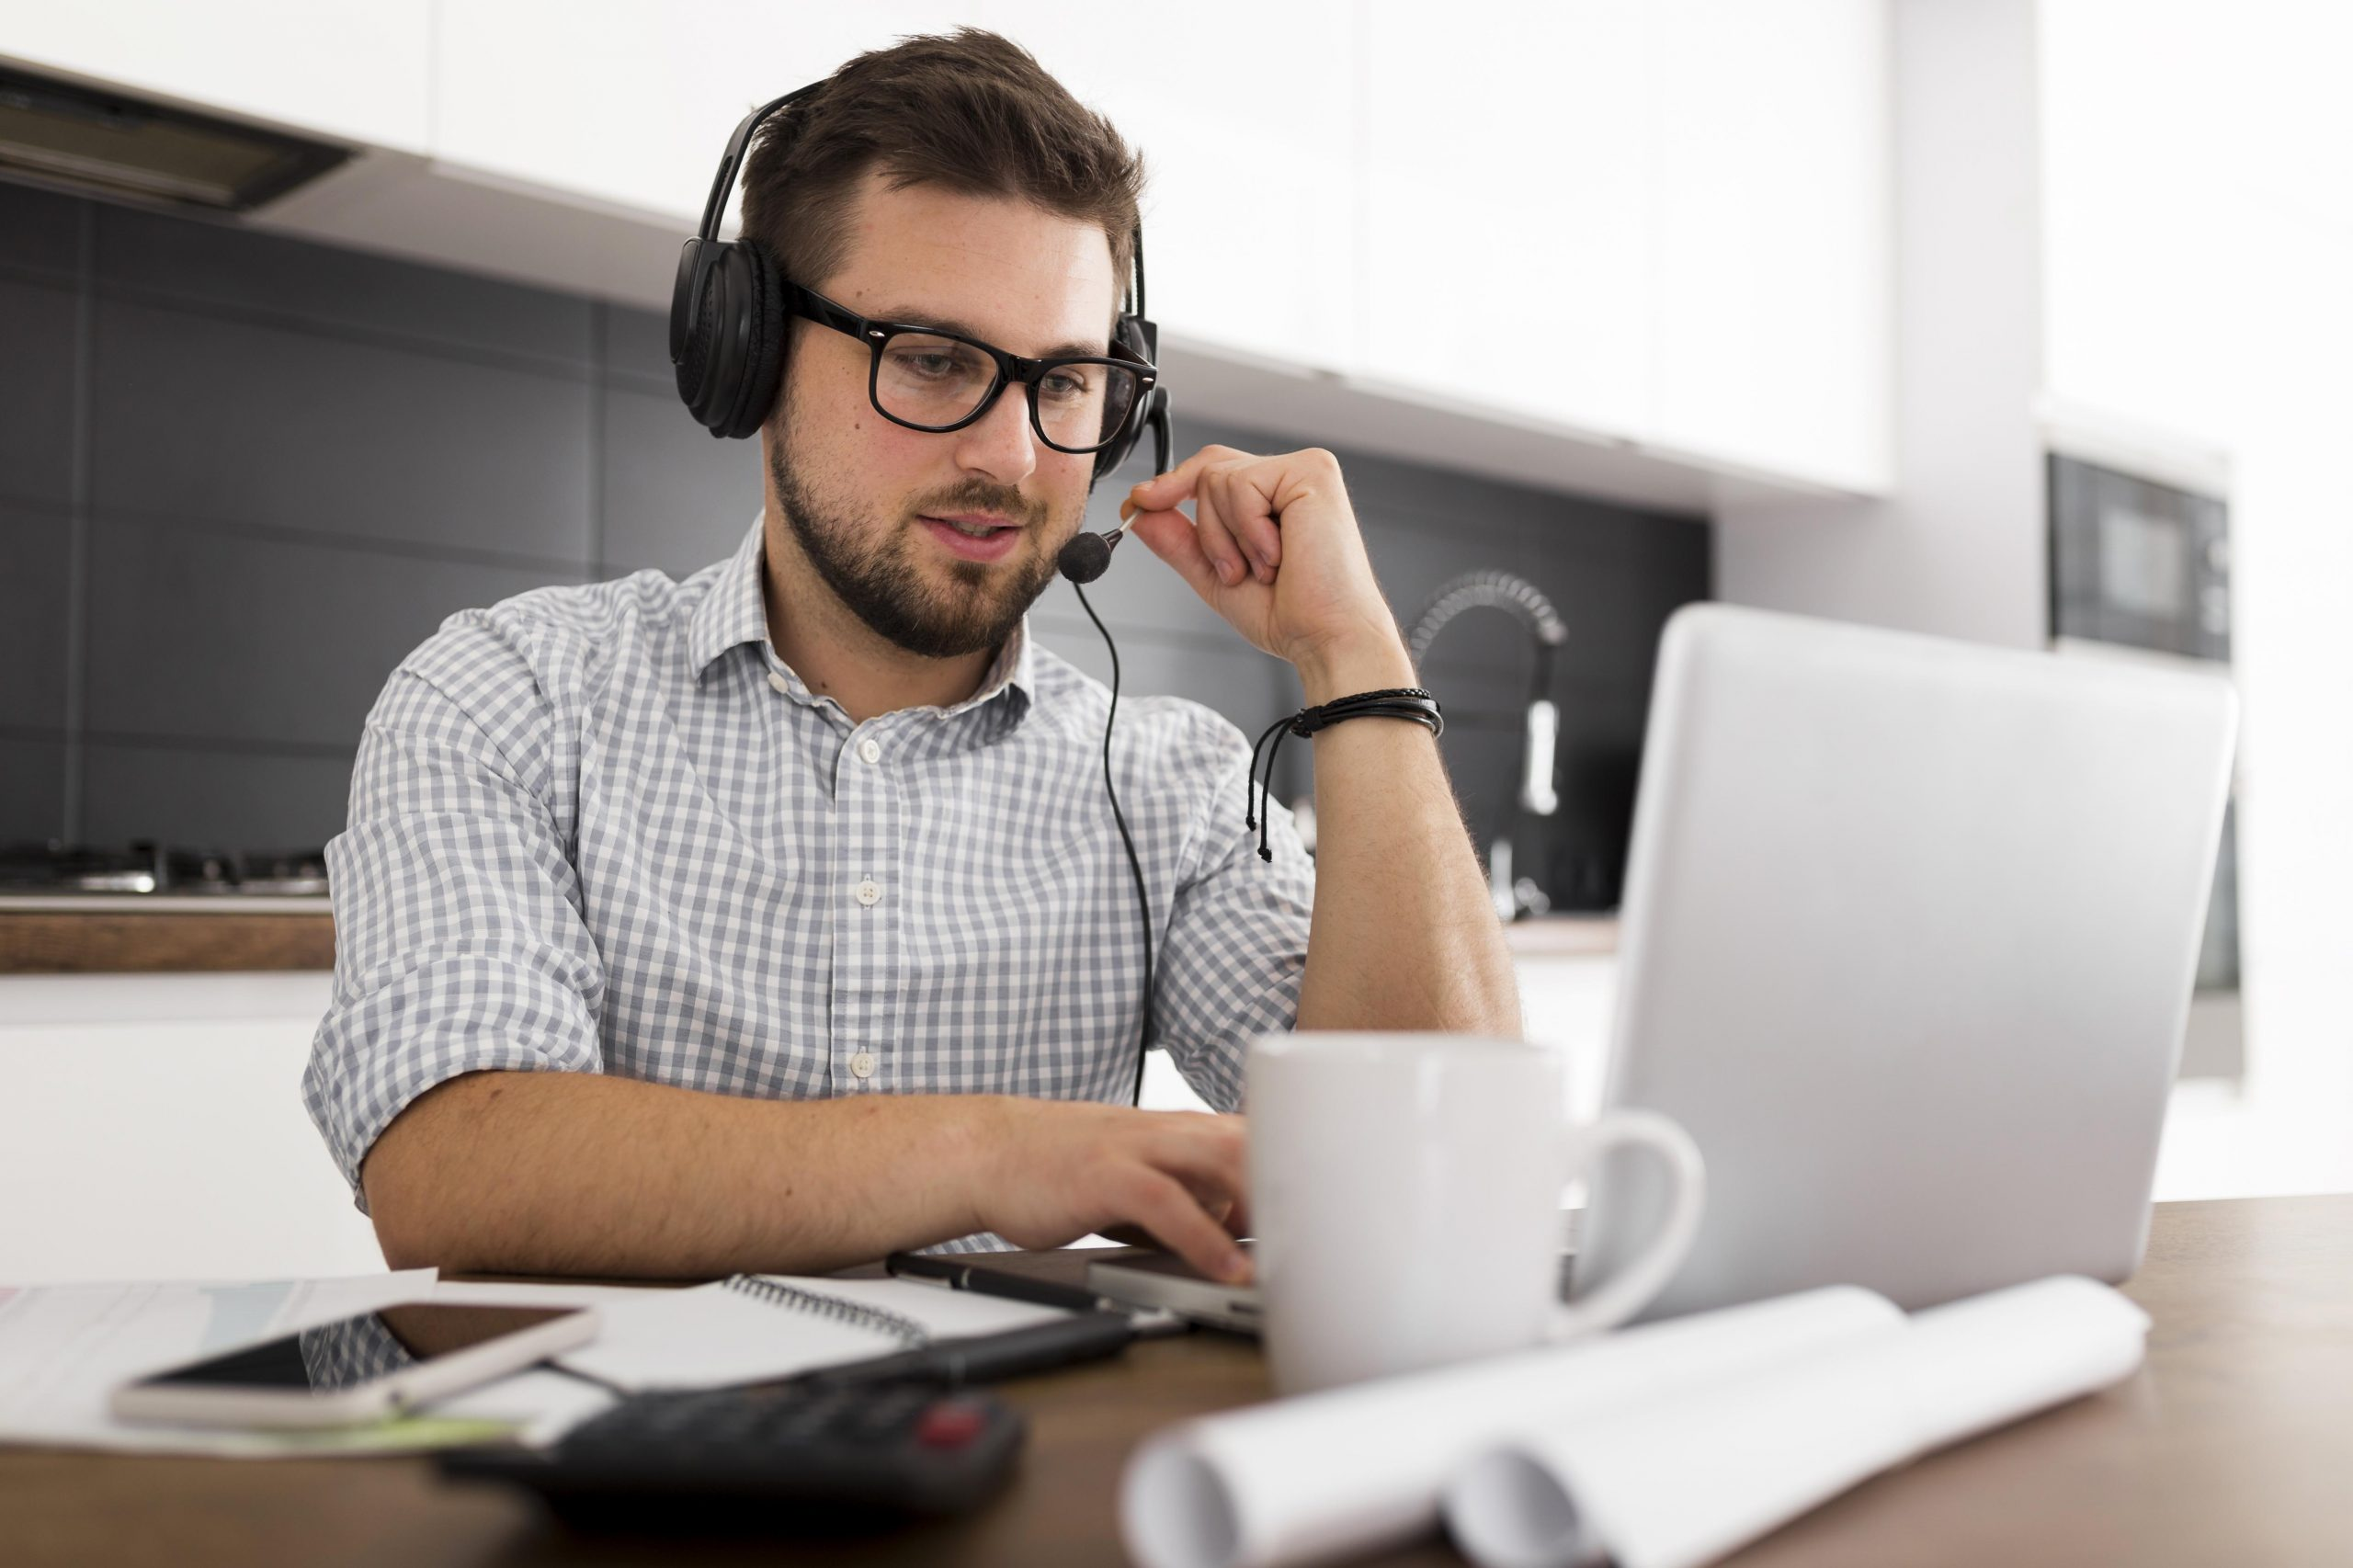 Secure devices when employees are working remotely